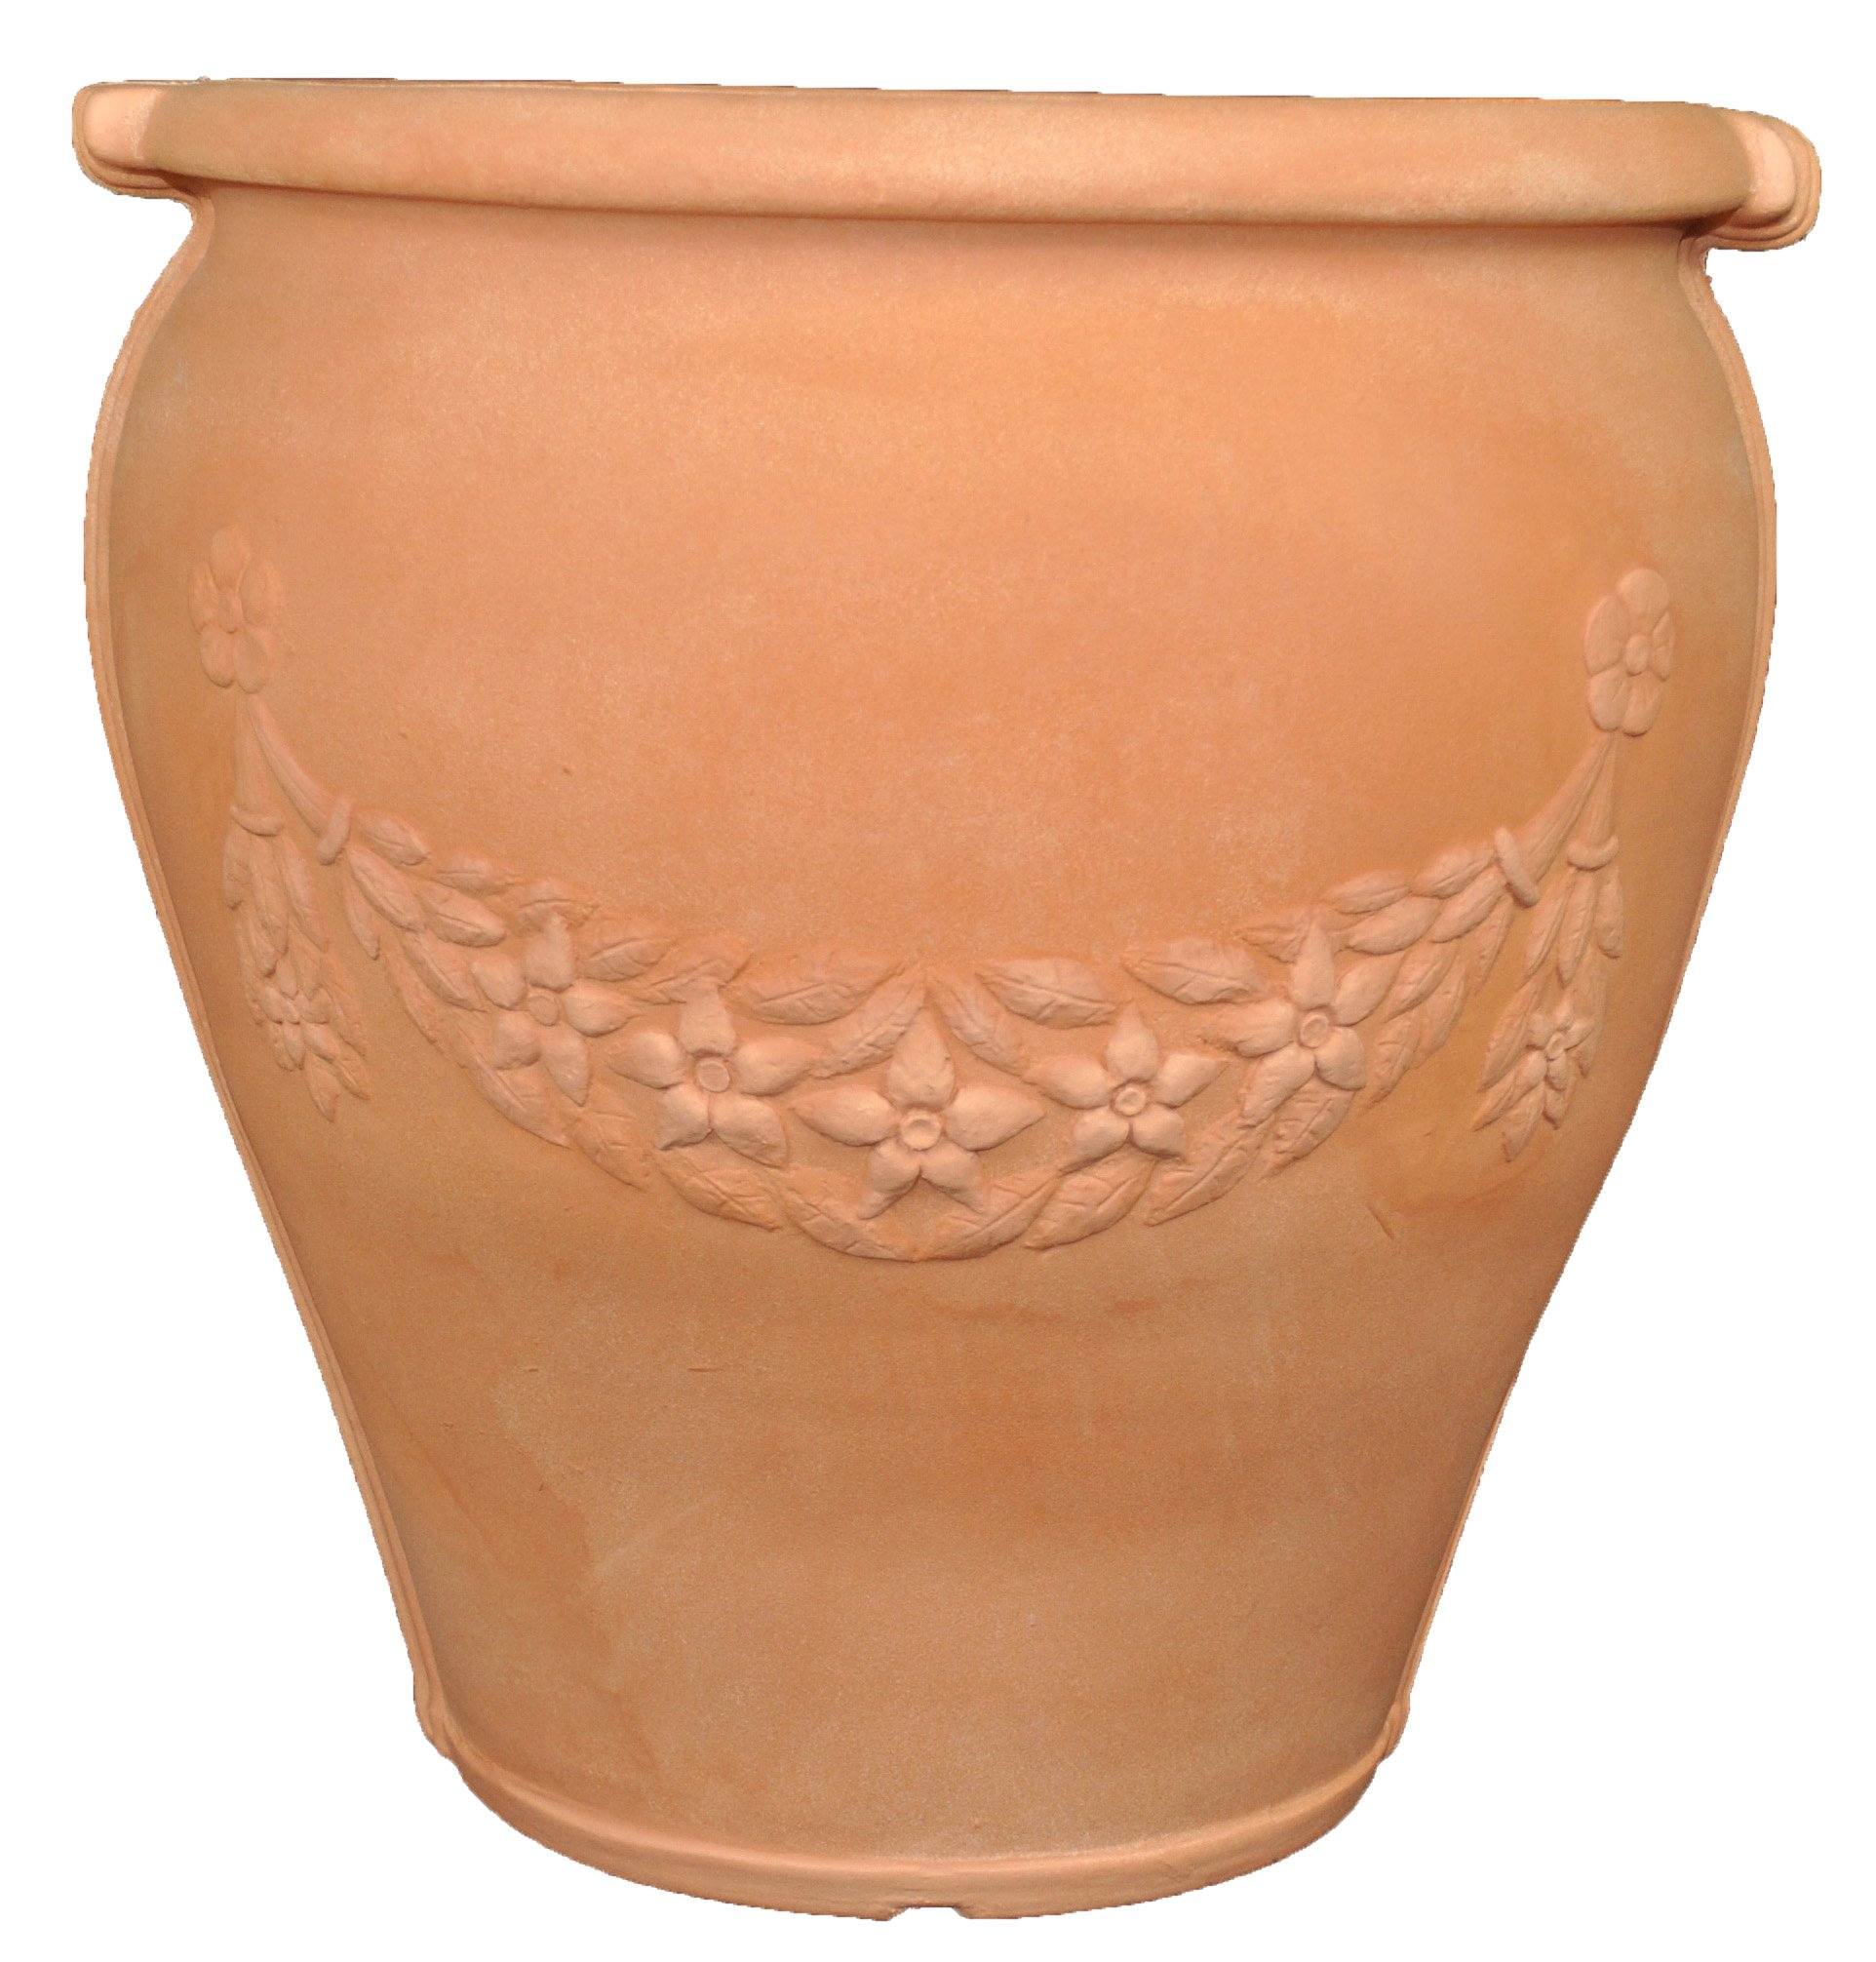 Tusco Products GU14WTC Garland Urn, Terra Cotta, 14-Inch by Tusco Products